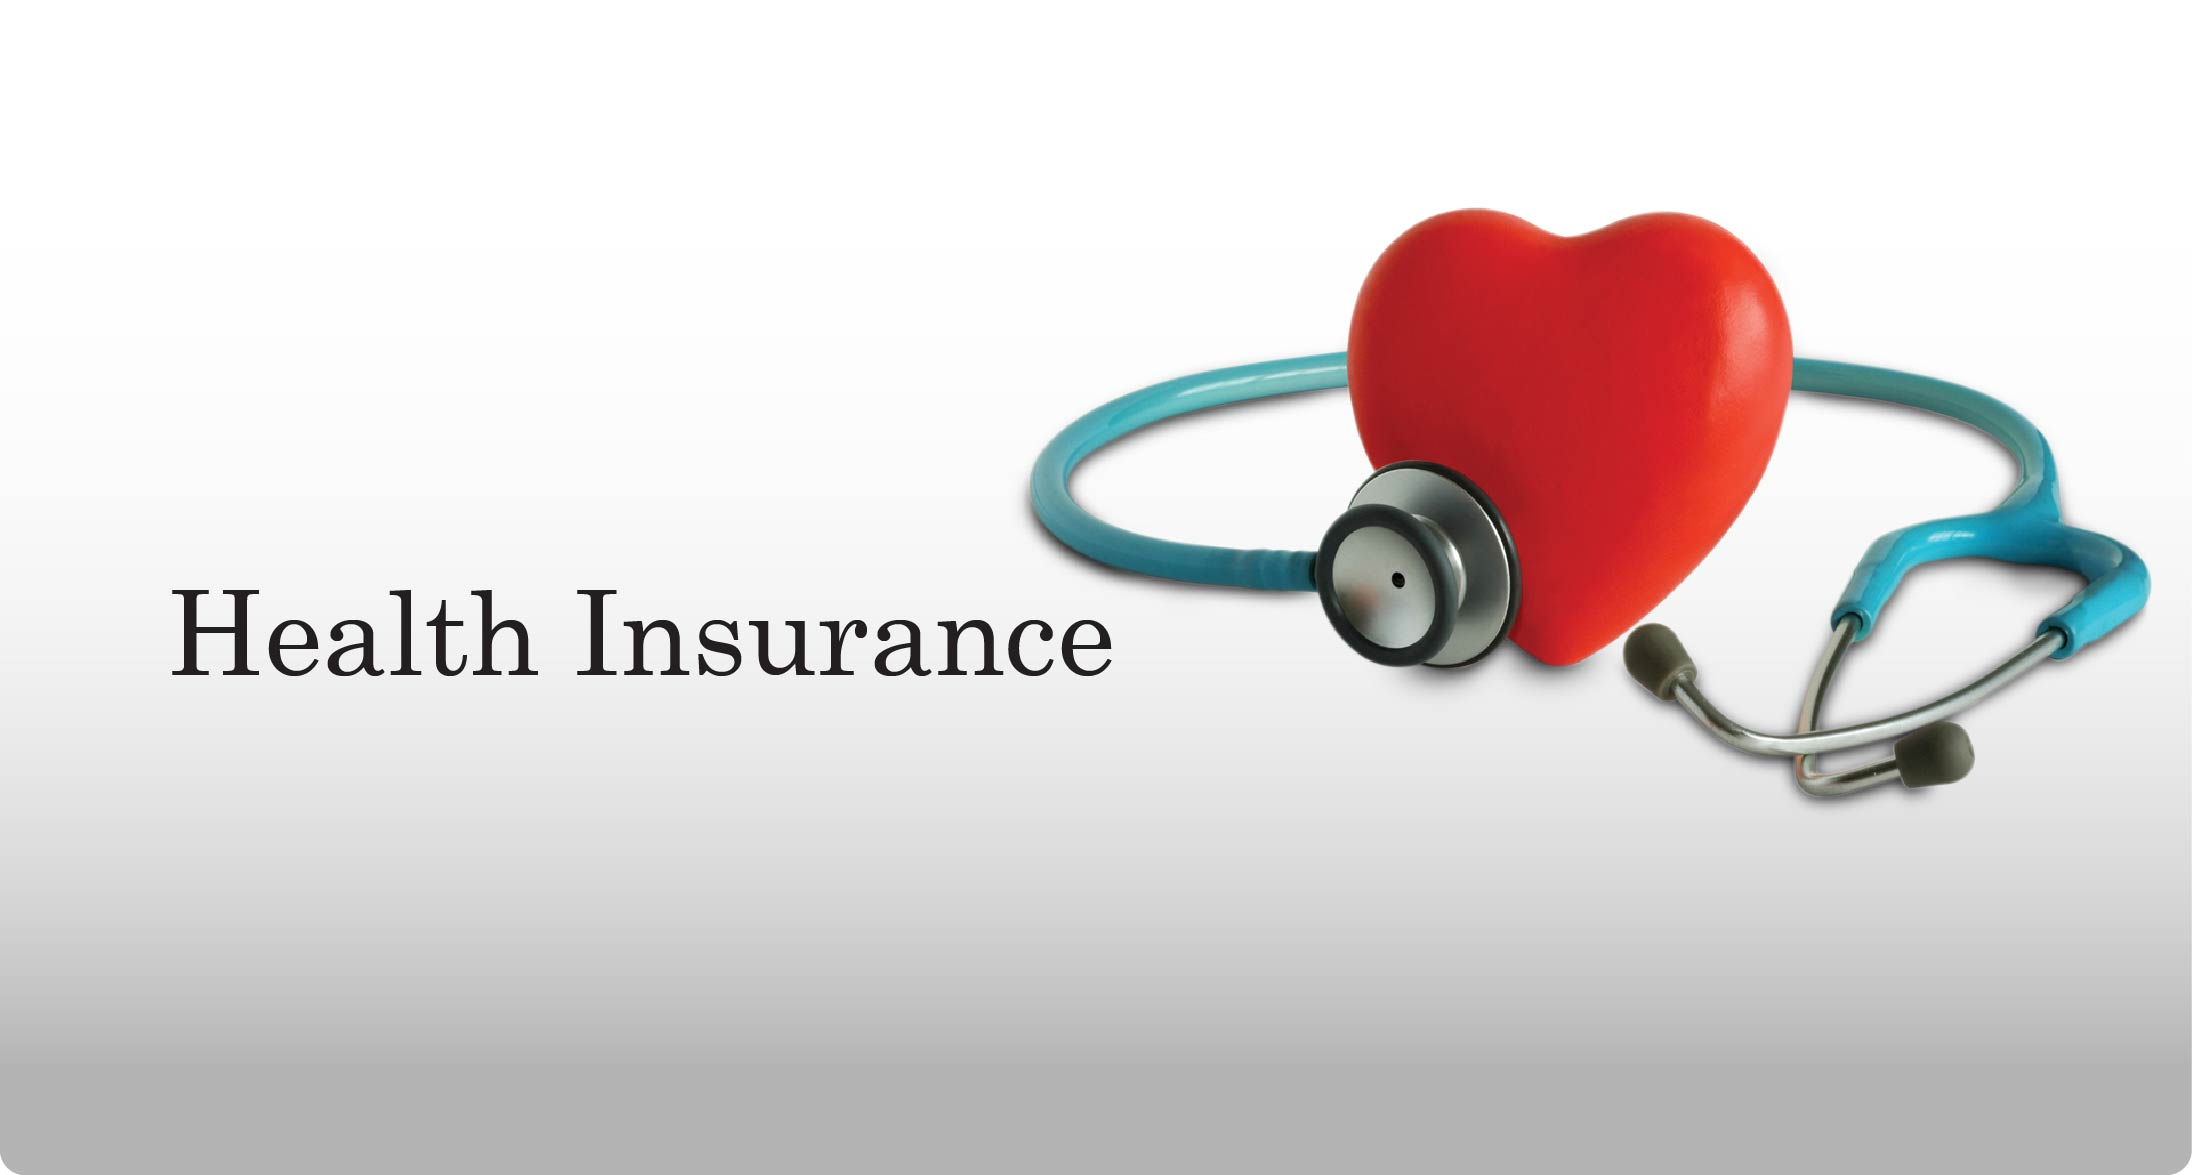 What Is the Best Medical Insurance Plan?